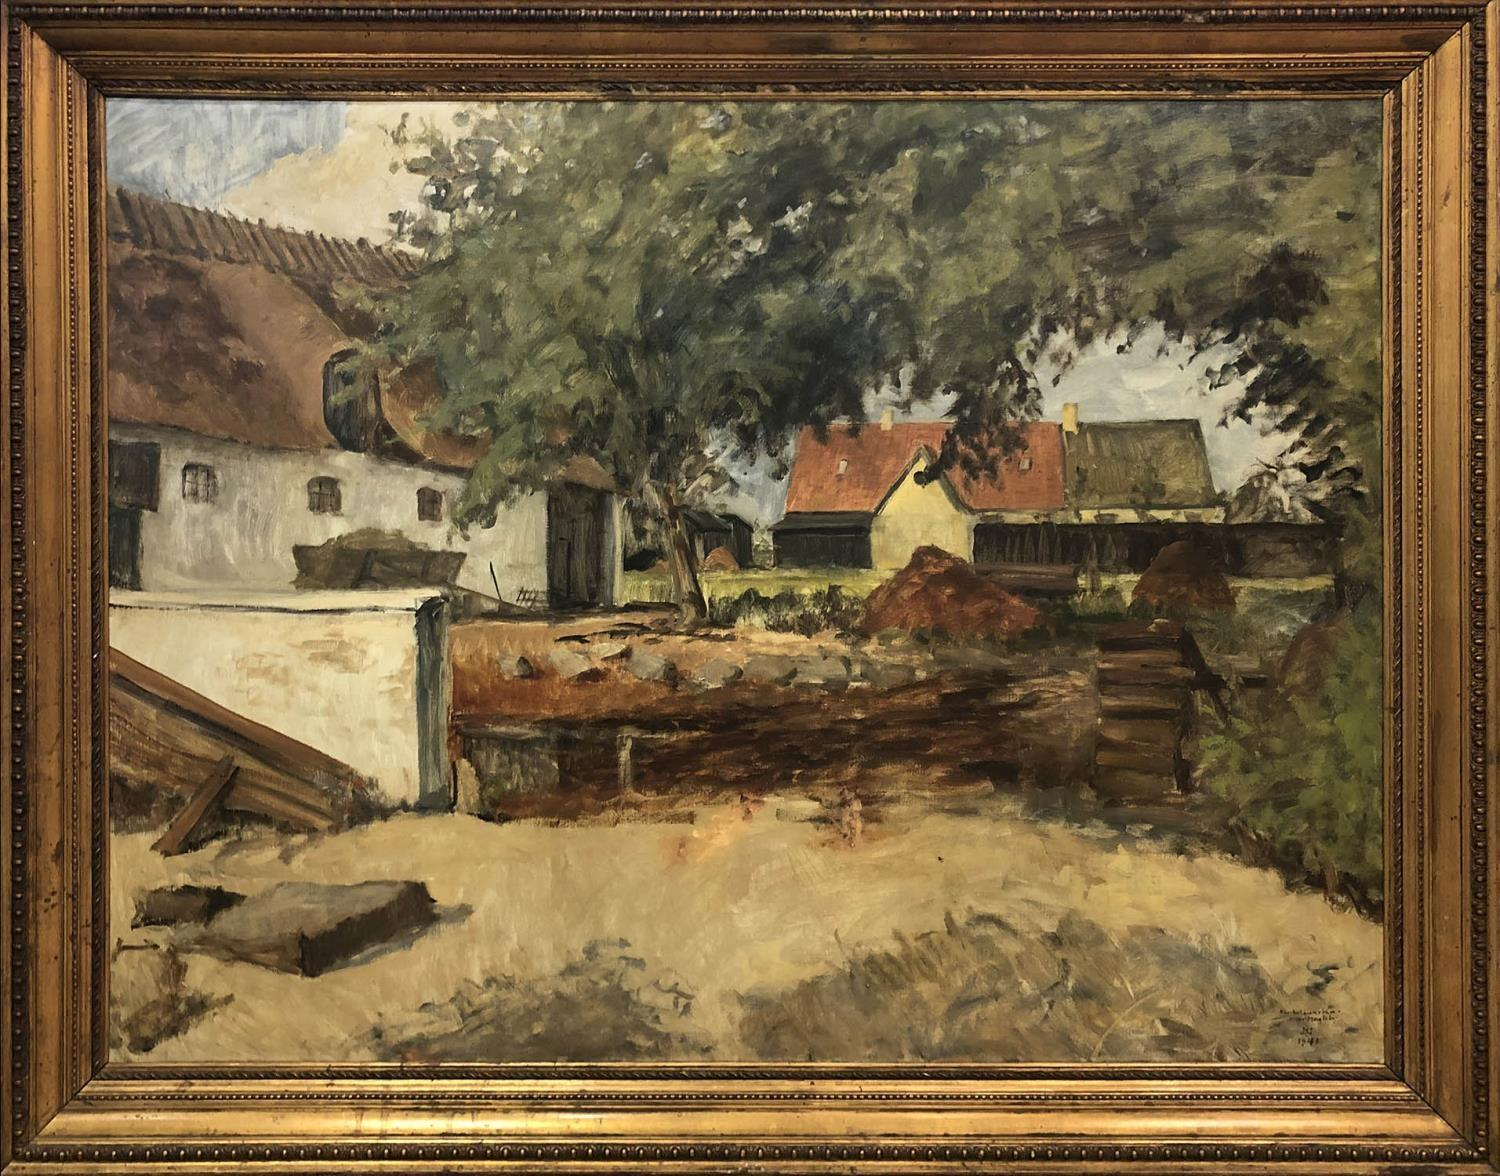 NIELS CHRISTIANSEN (1873-1960) 'Landscape with Farm', oil on canvas, signed and dated 1941 and